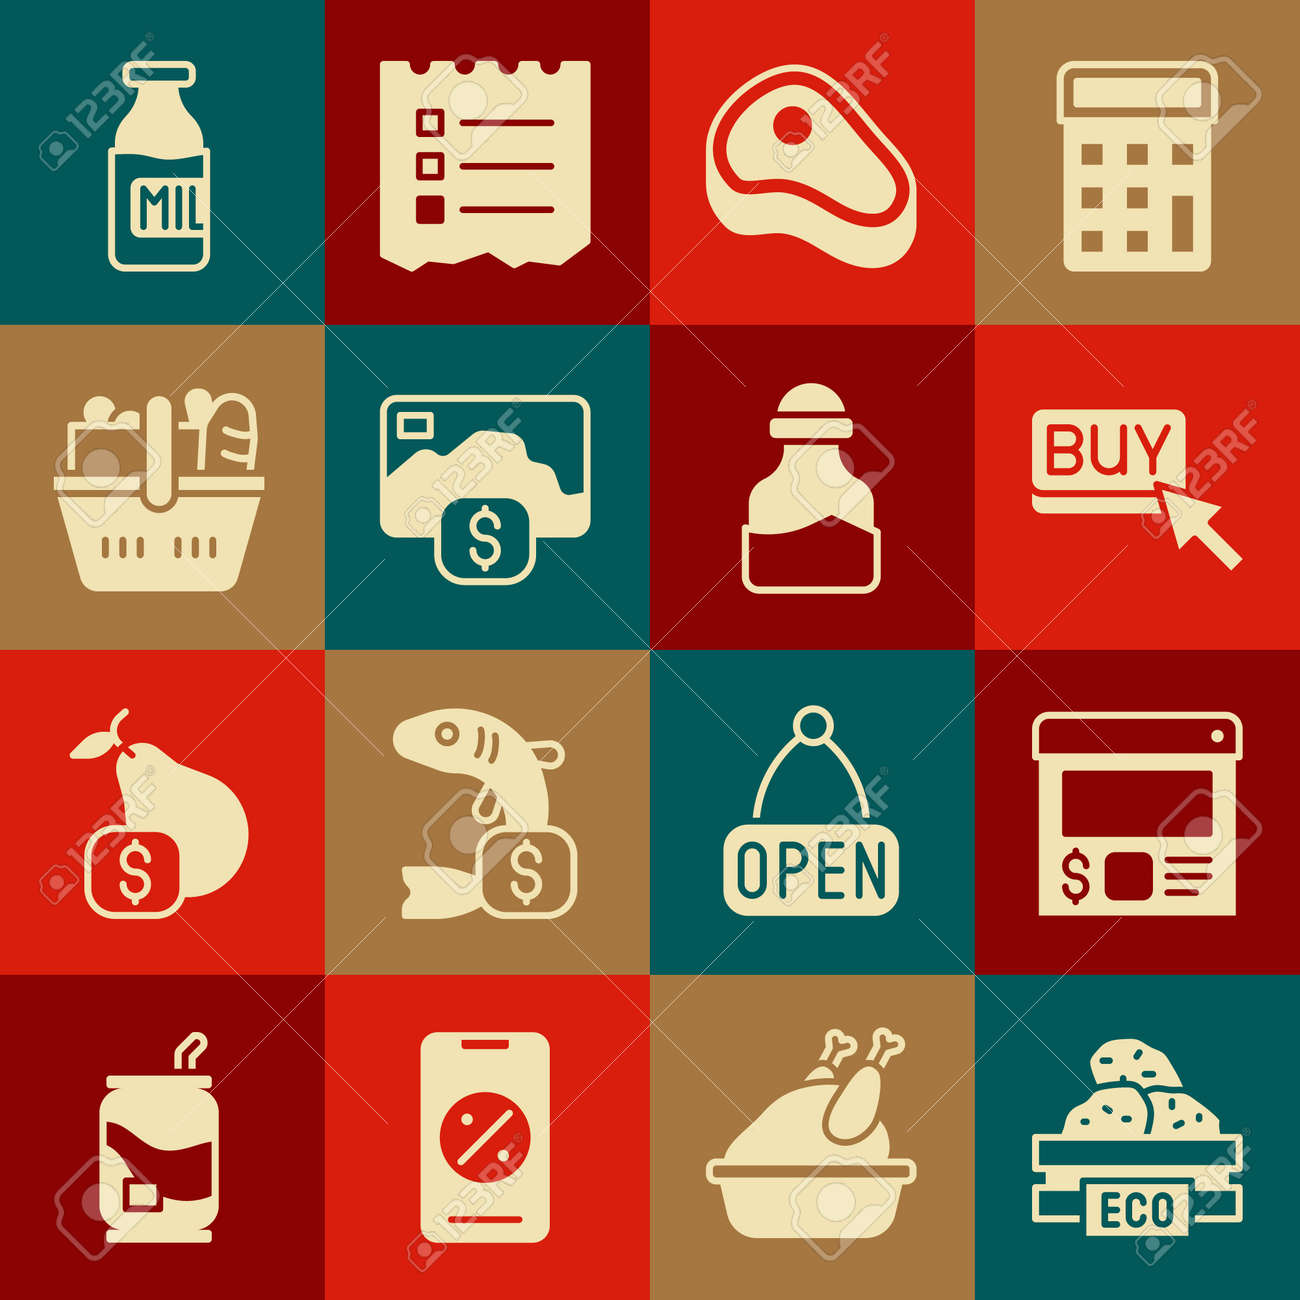 Set Wooden box for fruits, Online ordering and delivery, Buy button, Steak meat, Credit card, Shopping basket food, Bottle with milk and Spice can icon. Vector - 173396254